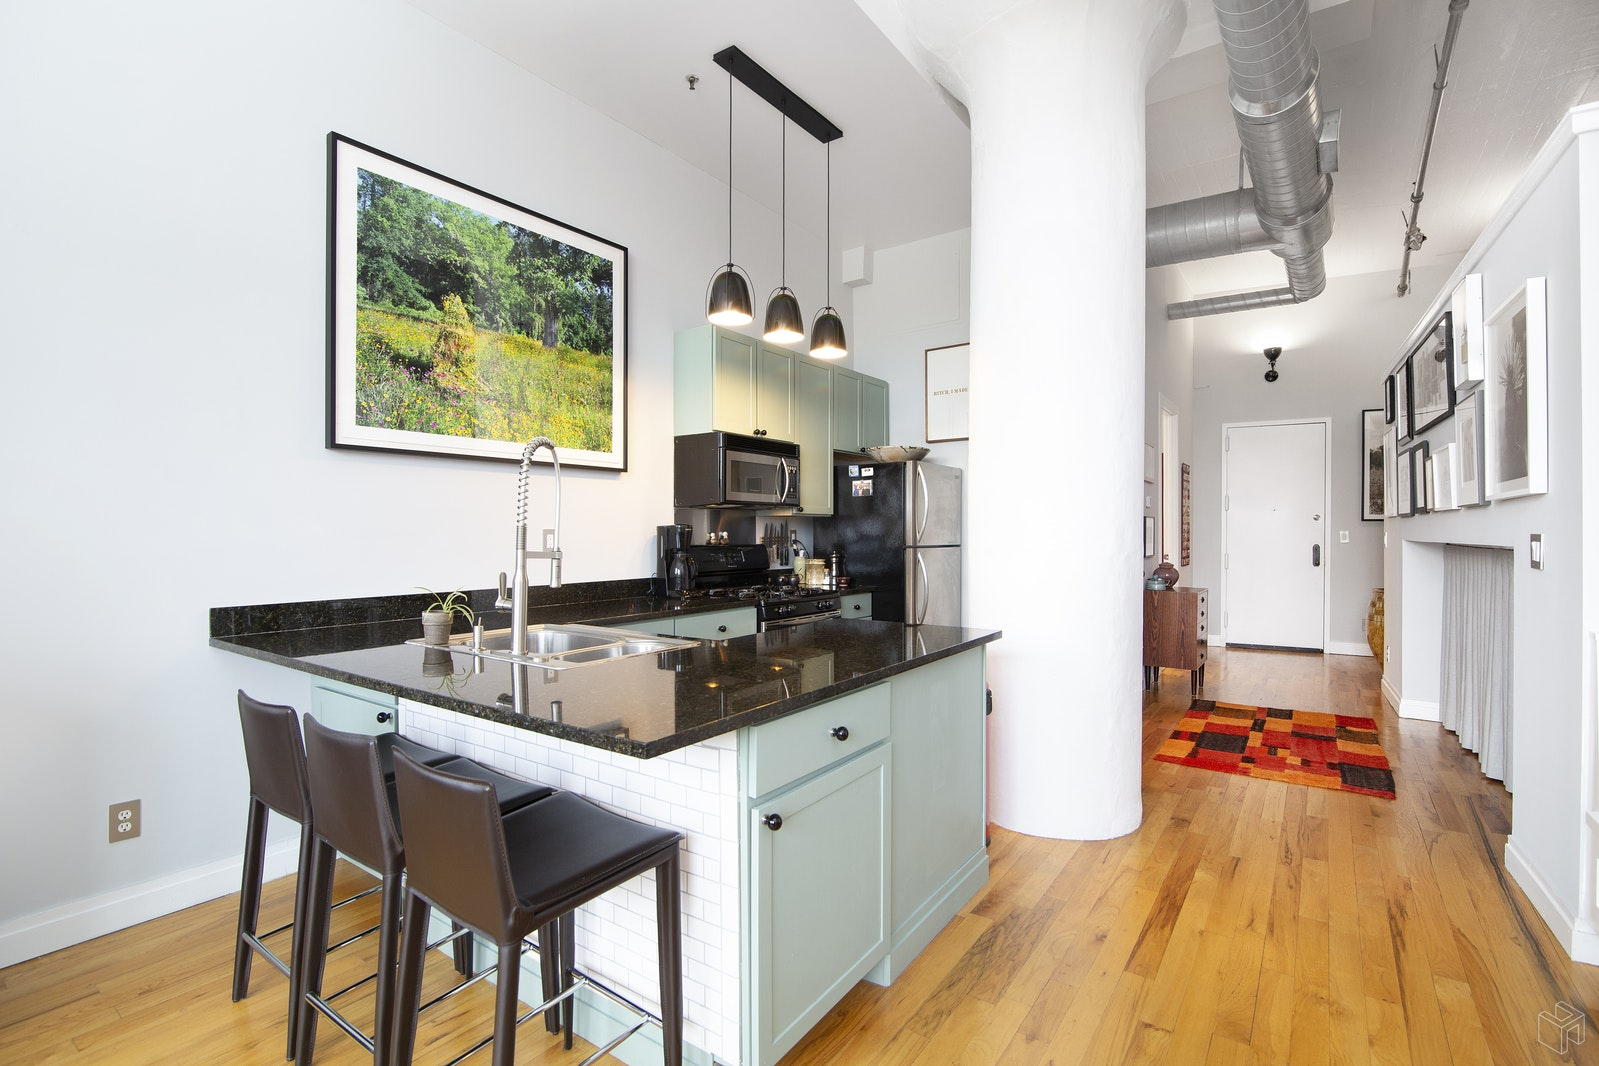 689 MYRTLE AVENUE 2A, Clinton Hill, $798,000, Web #: 18939087